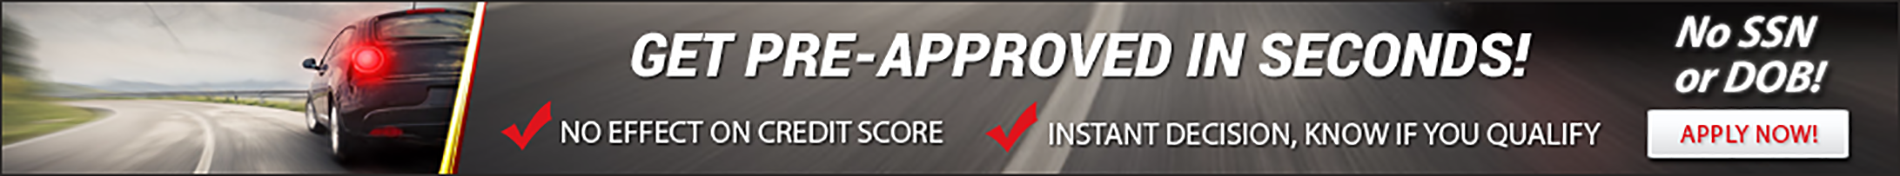 get approved banner